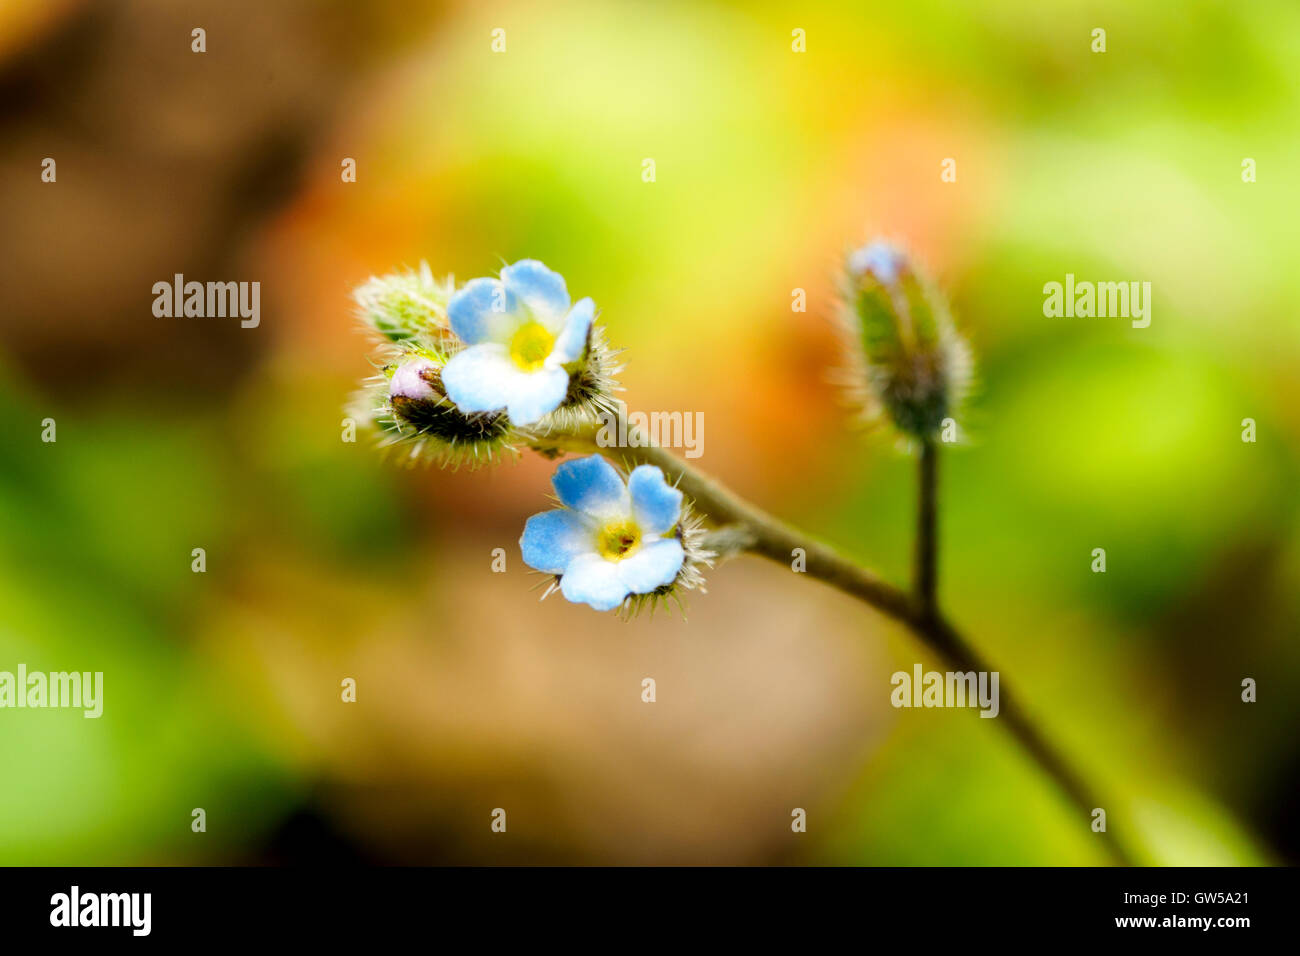 Forget me not flower - Italy - Stock Image